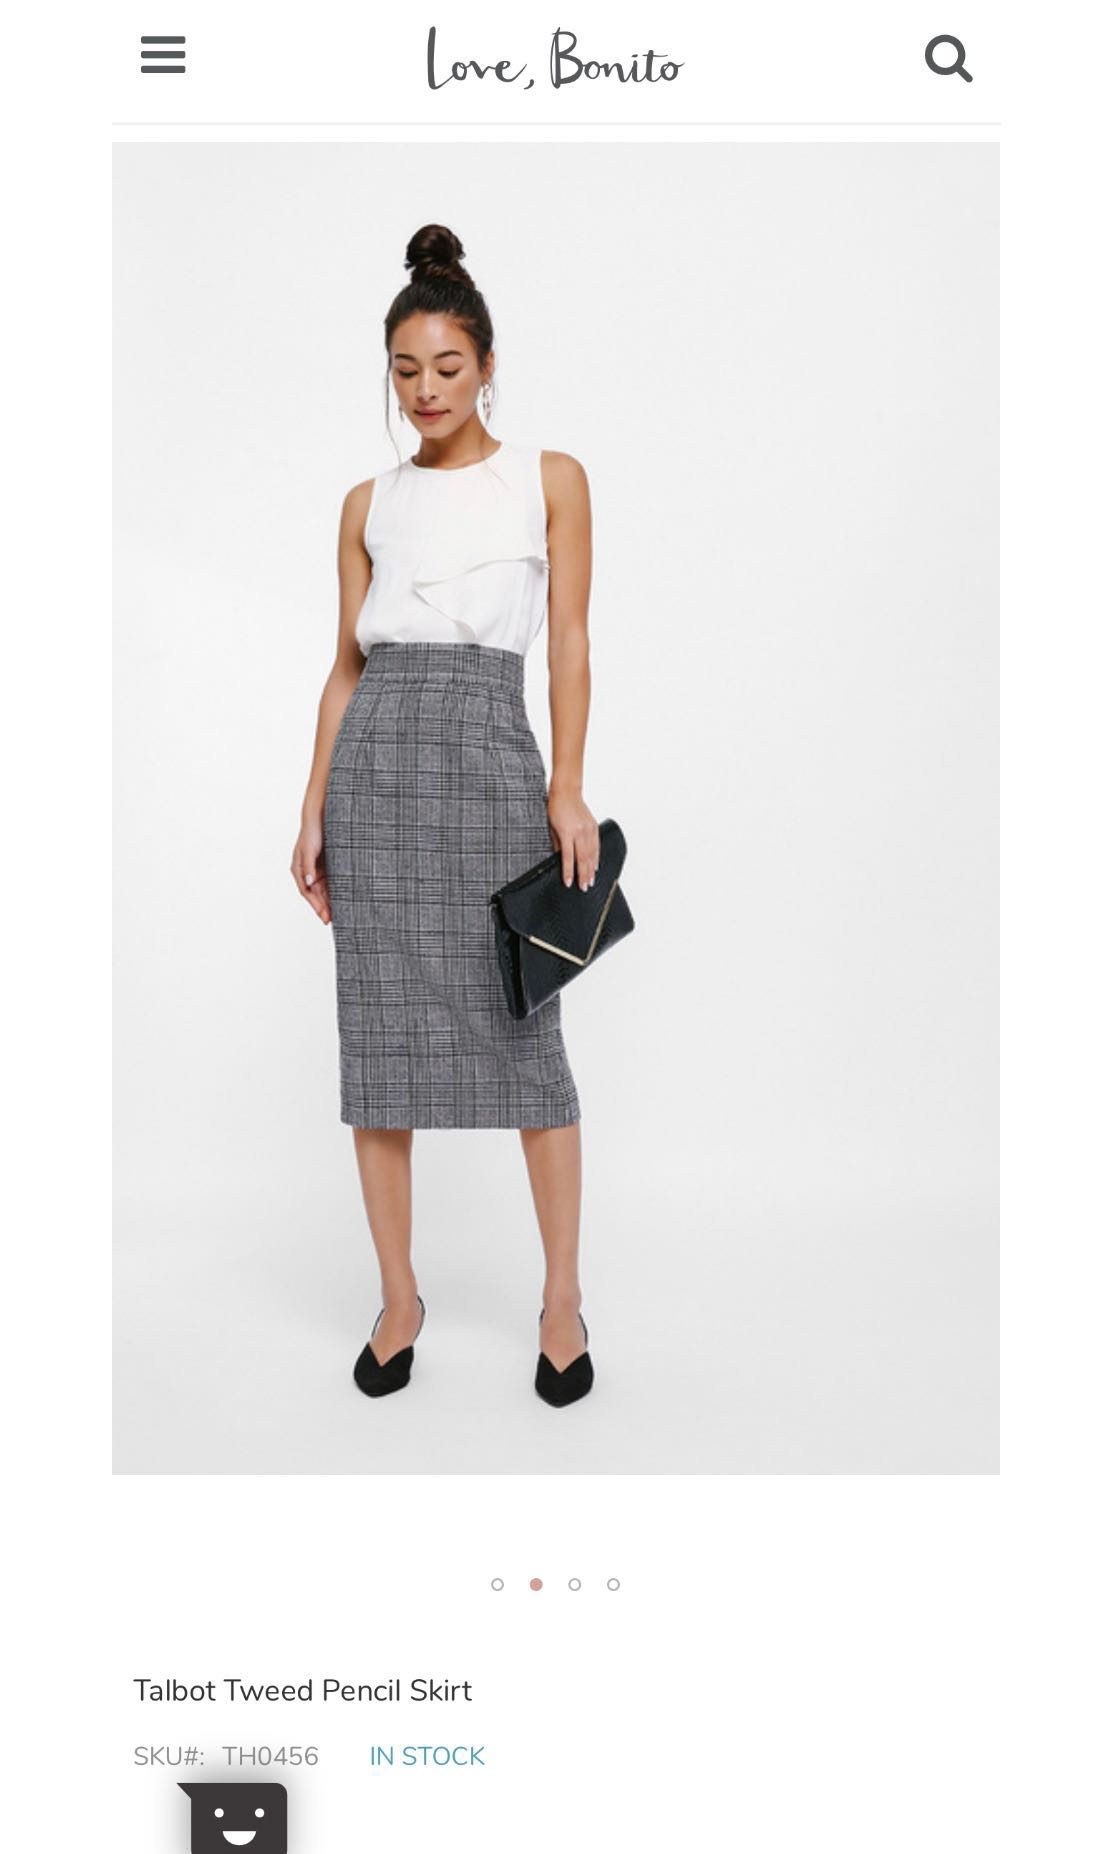 7a9a4c254e Love Bonito Talbot Tweed Pencil Skirt, Women's Fashion, Clothes ...